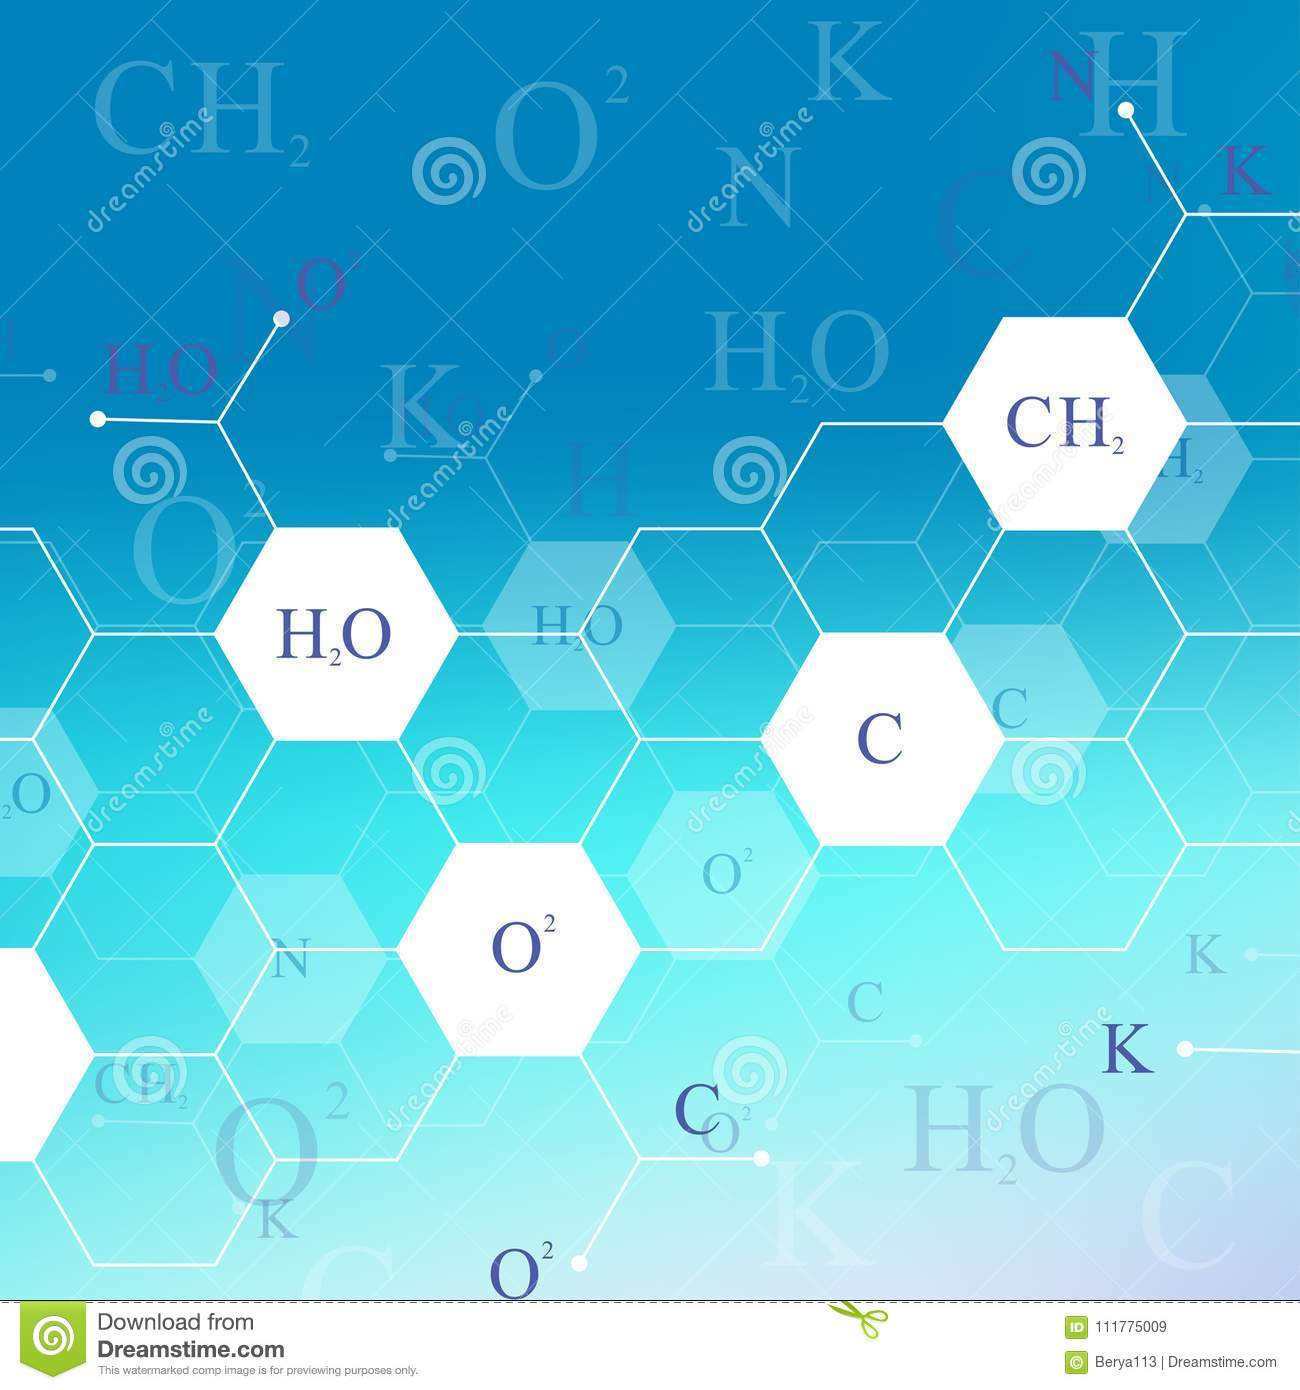 Scientific hexagonal chemistry pattern. Structure molecule DNA research as concept. Science and technology background